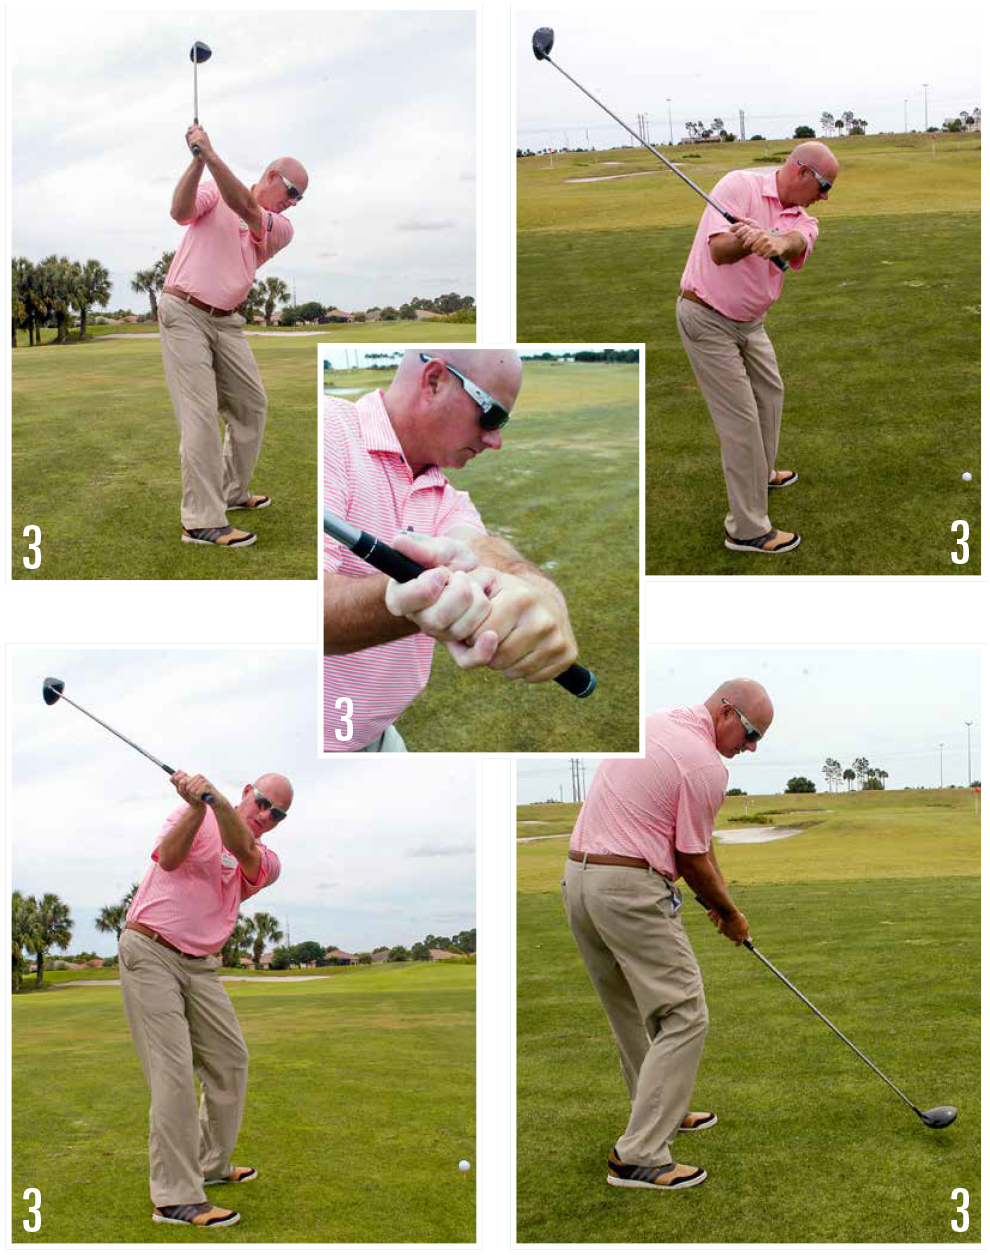 Driver Swing Sequence By Billy Ore